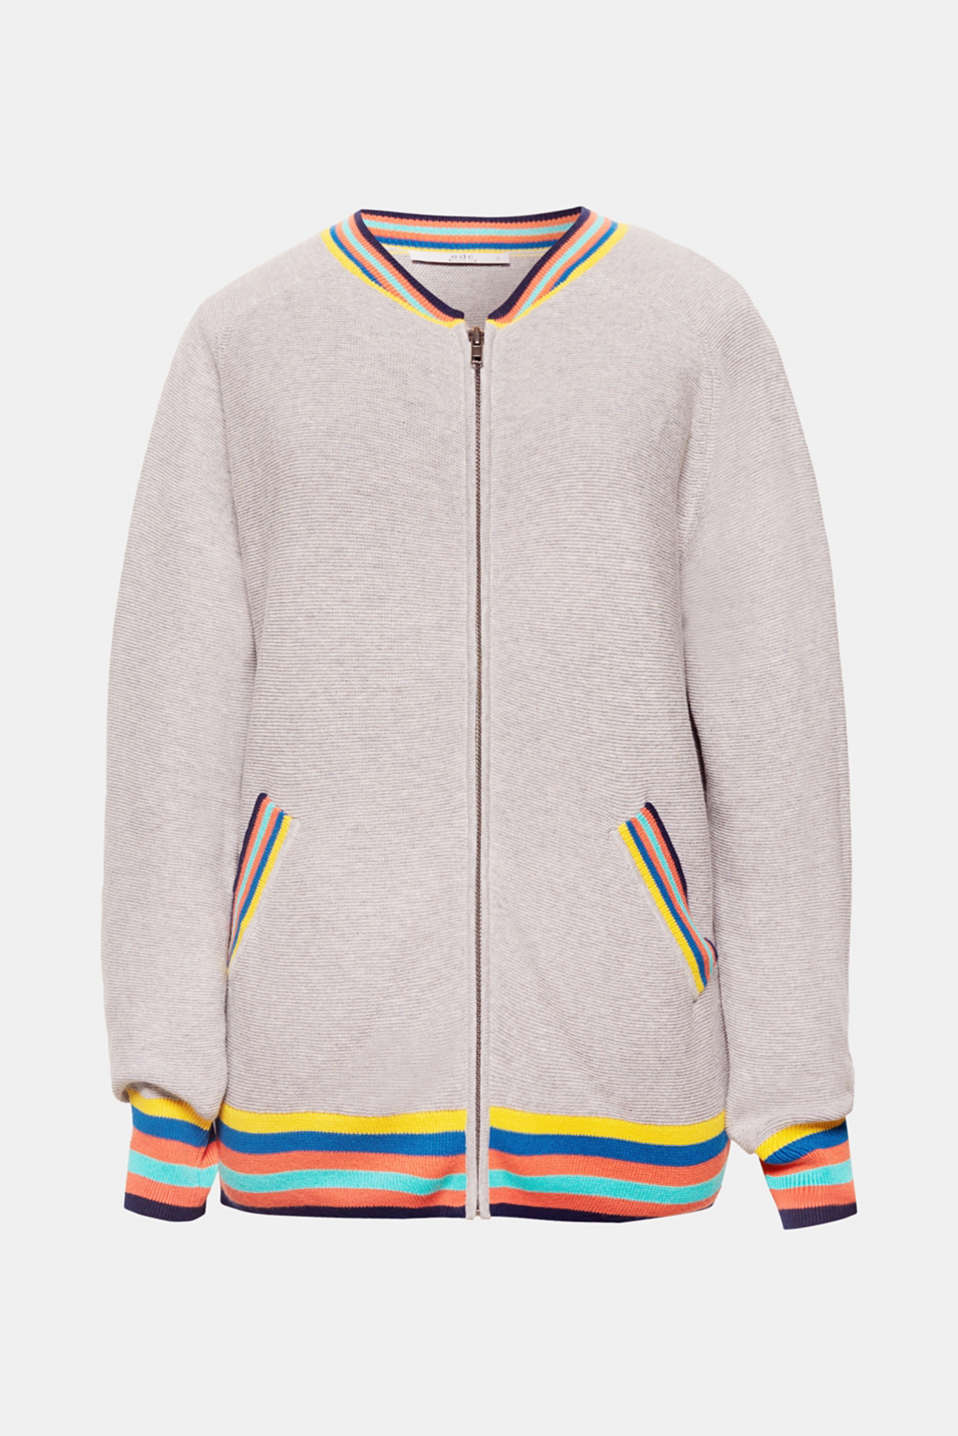 Bomber jacket with a new look, in a sporty textured knit with colourful striped edges.